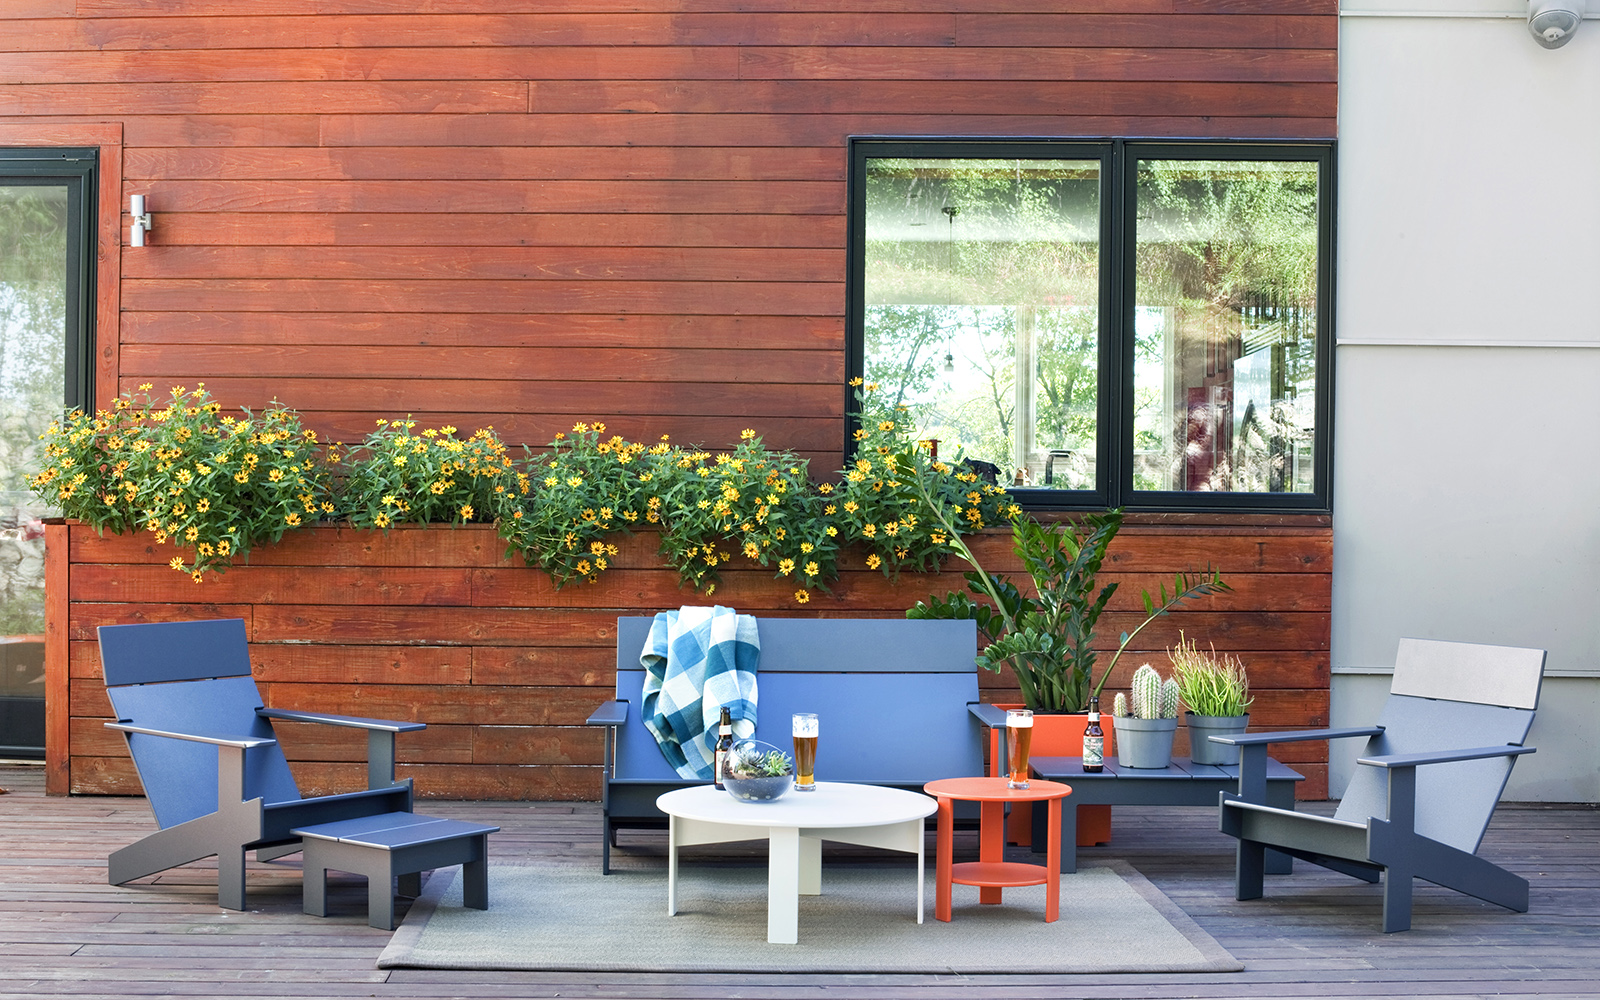 Dacks, Lollygagger, Lounge set, Outdoor living, Outdoor furniture, Tuinmeubelen, Exclusieve tuin